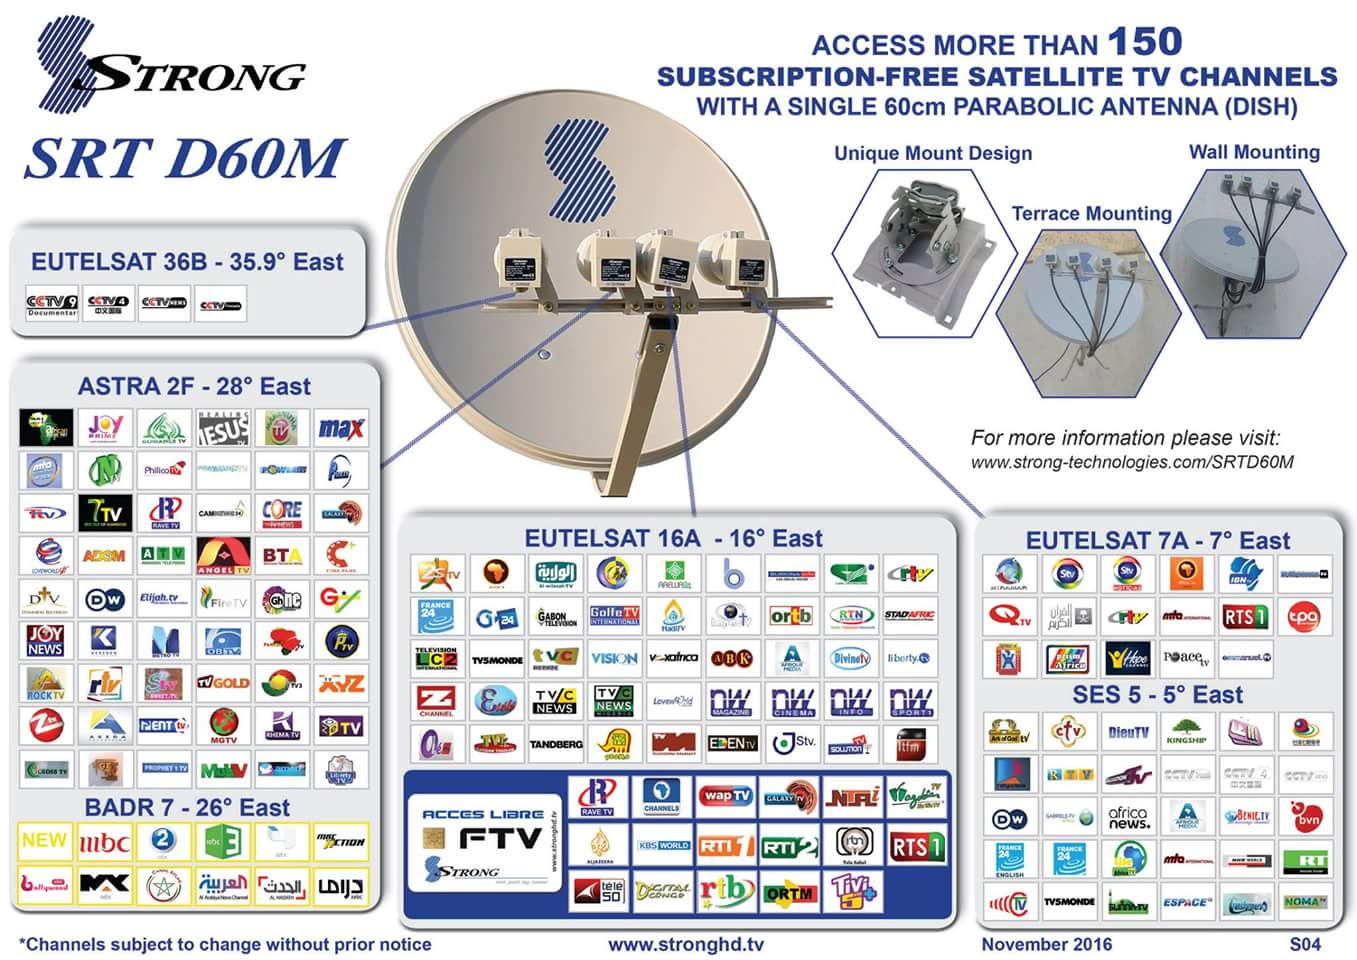 Access More Than 150 Free Satellite TV Channels - Satellite